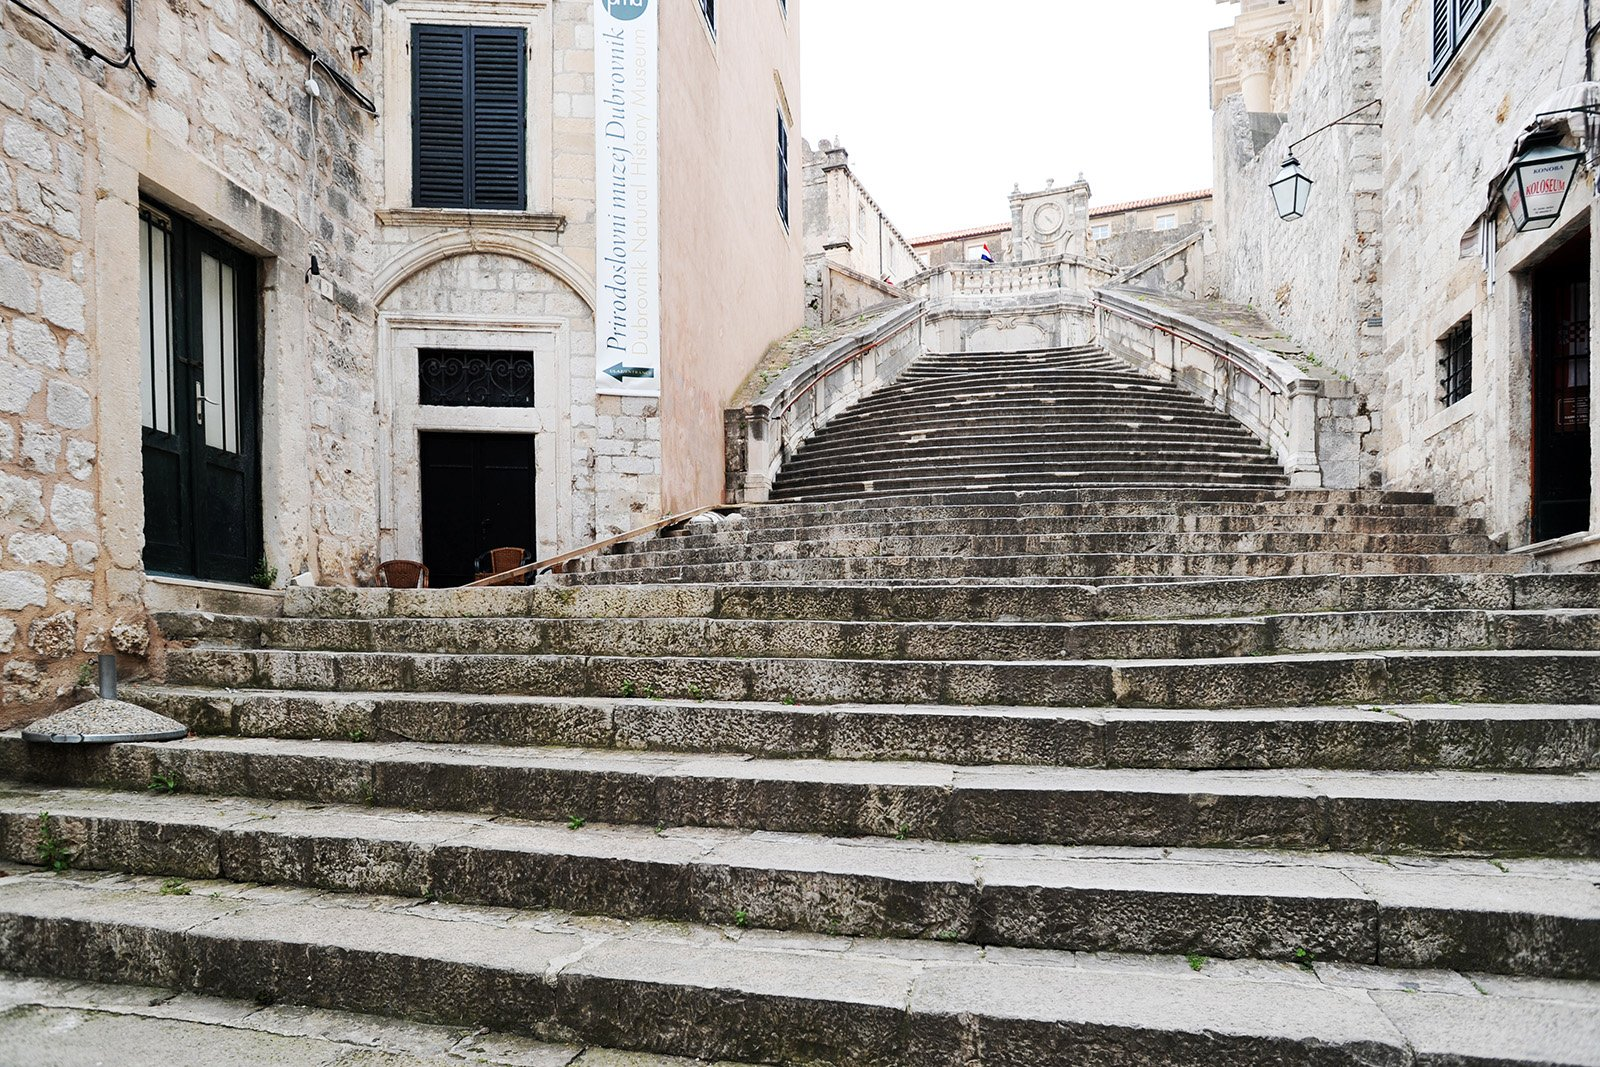 Jesuits staircase, Dubrovnik